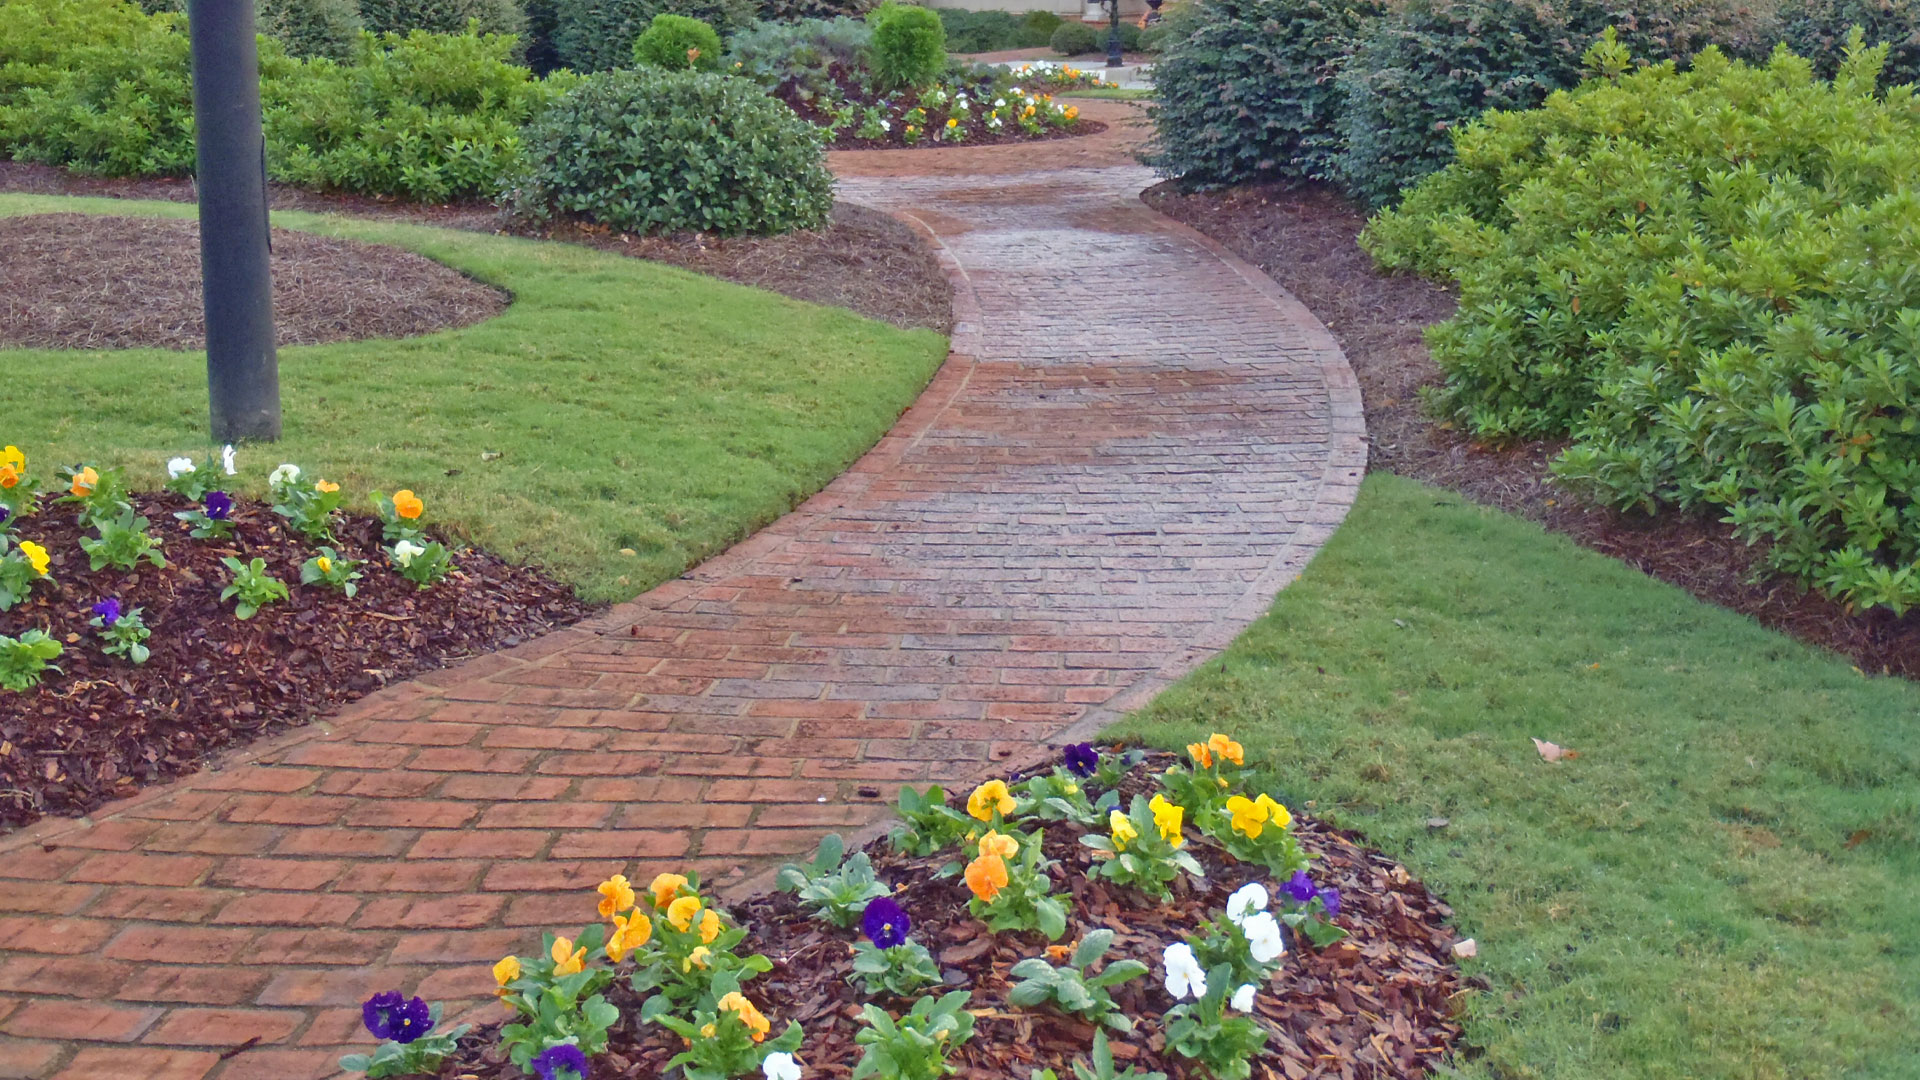 Landscaping with annuals and a paver walkway installation.